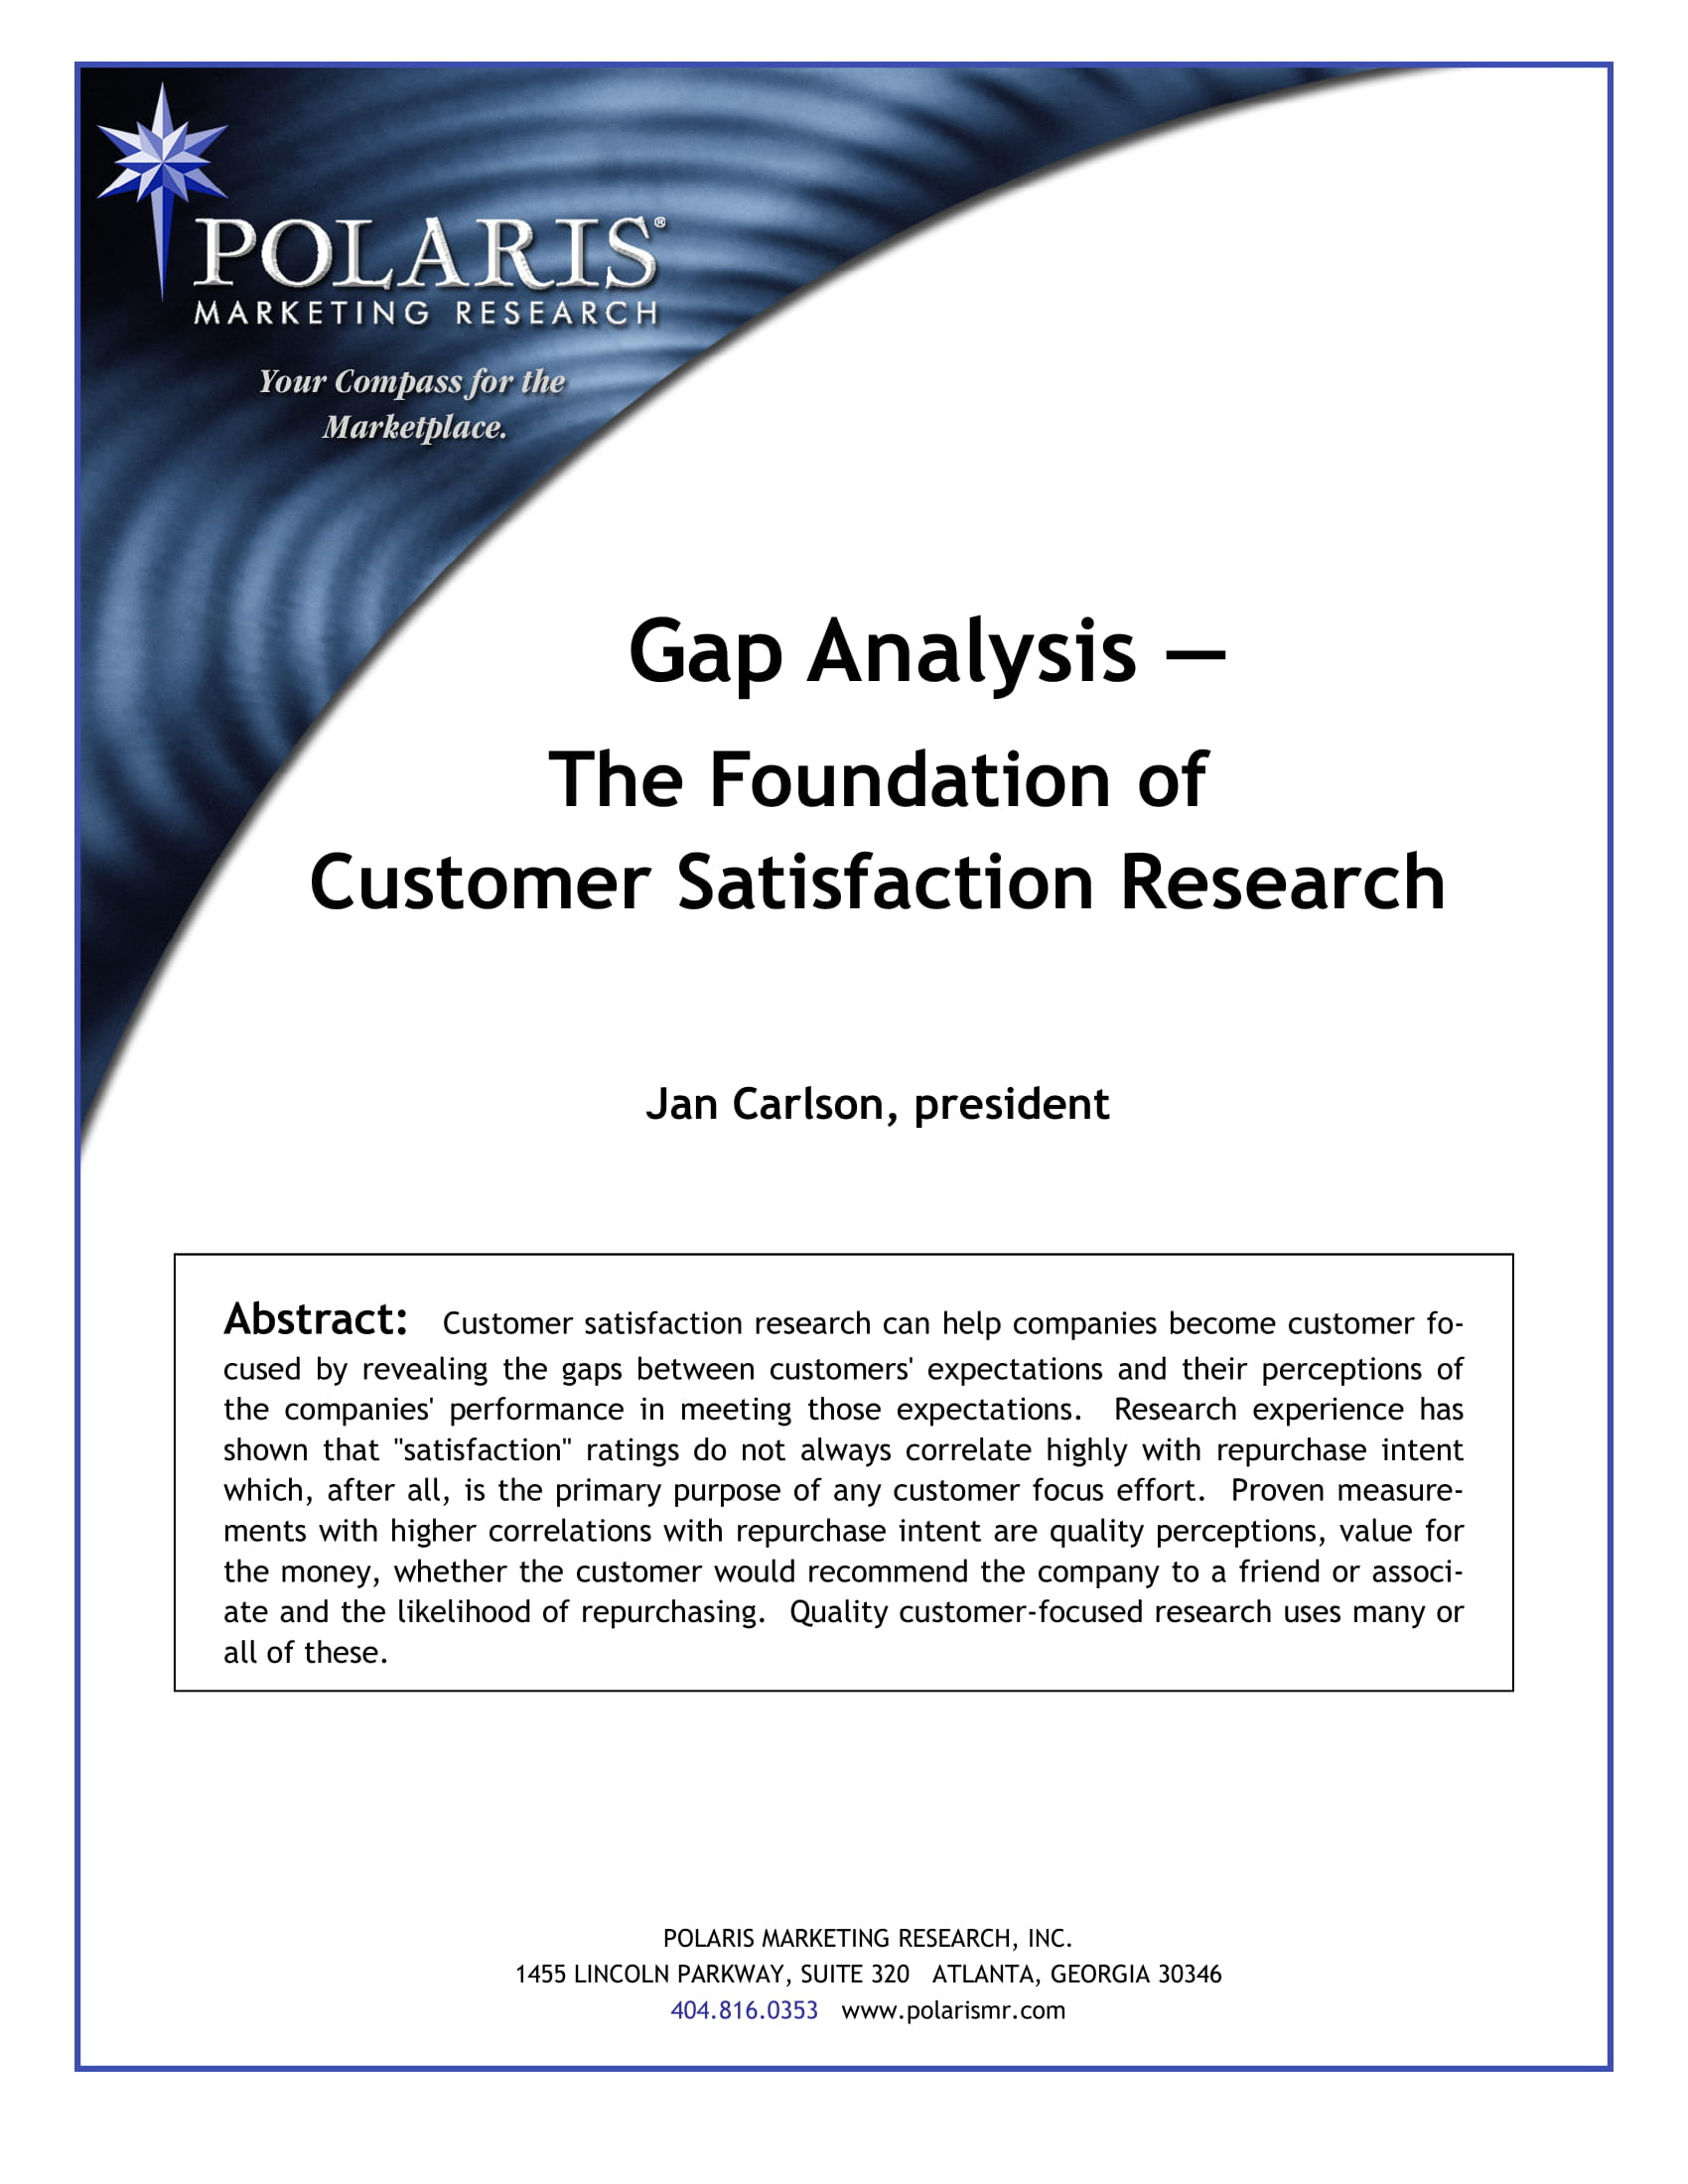 market gap analysis identification of factors for target market satisfaction example 1